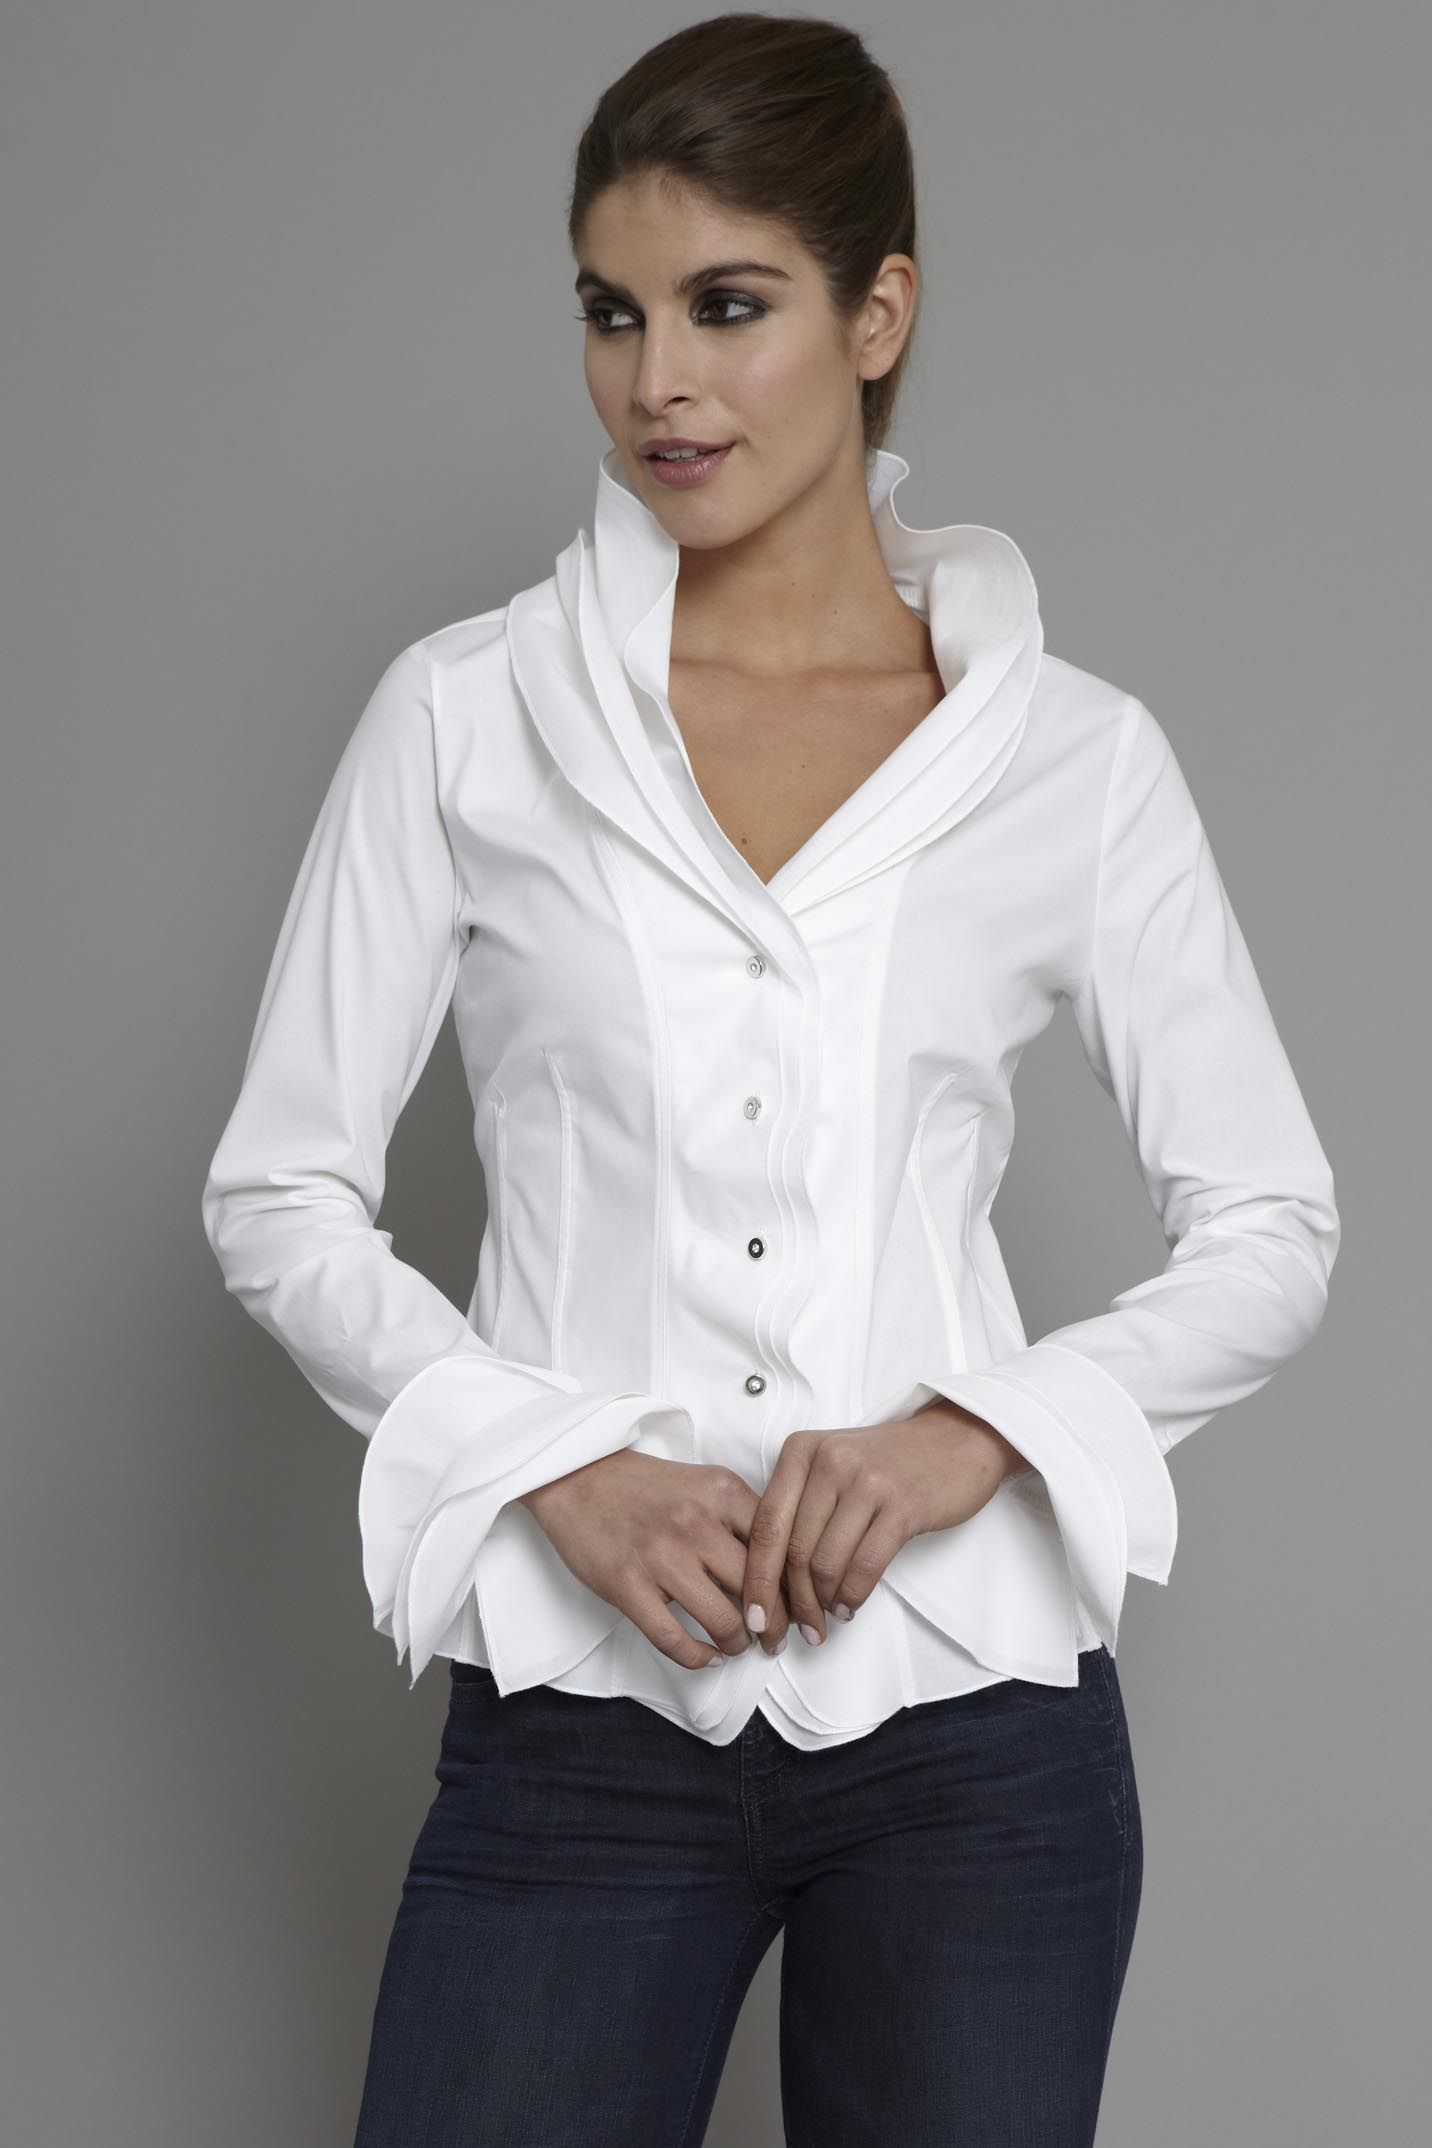 ISABELLA: Our number one bestseller, and it's easy to see why. Look iconic in two minutes flat in this shirt -> http://www.theshirtcompany.com/SPRING-SUMMER-2013/c13/p317/Three-Layer-Collar-And-Cuff-Shirt/product_info.html